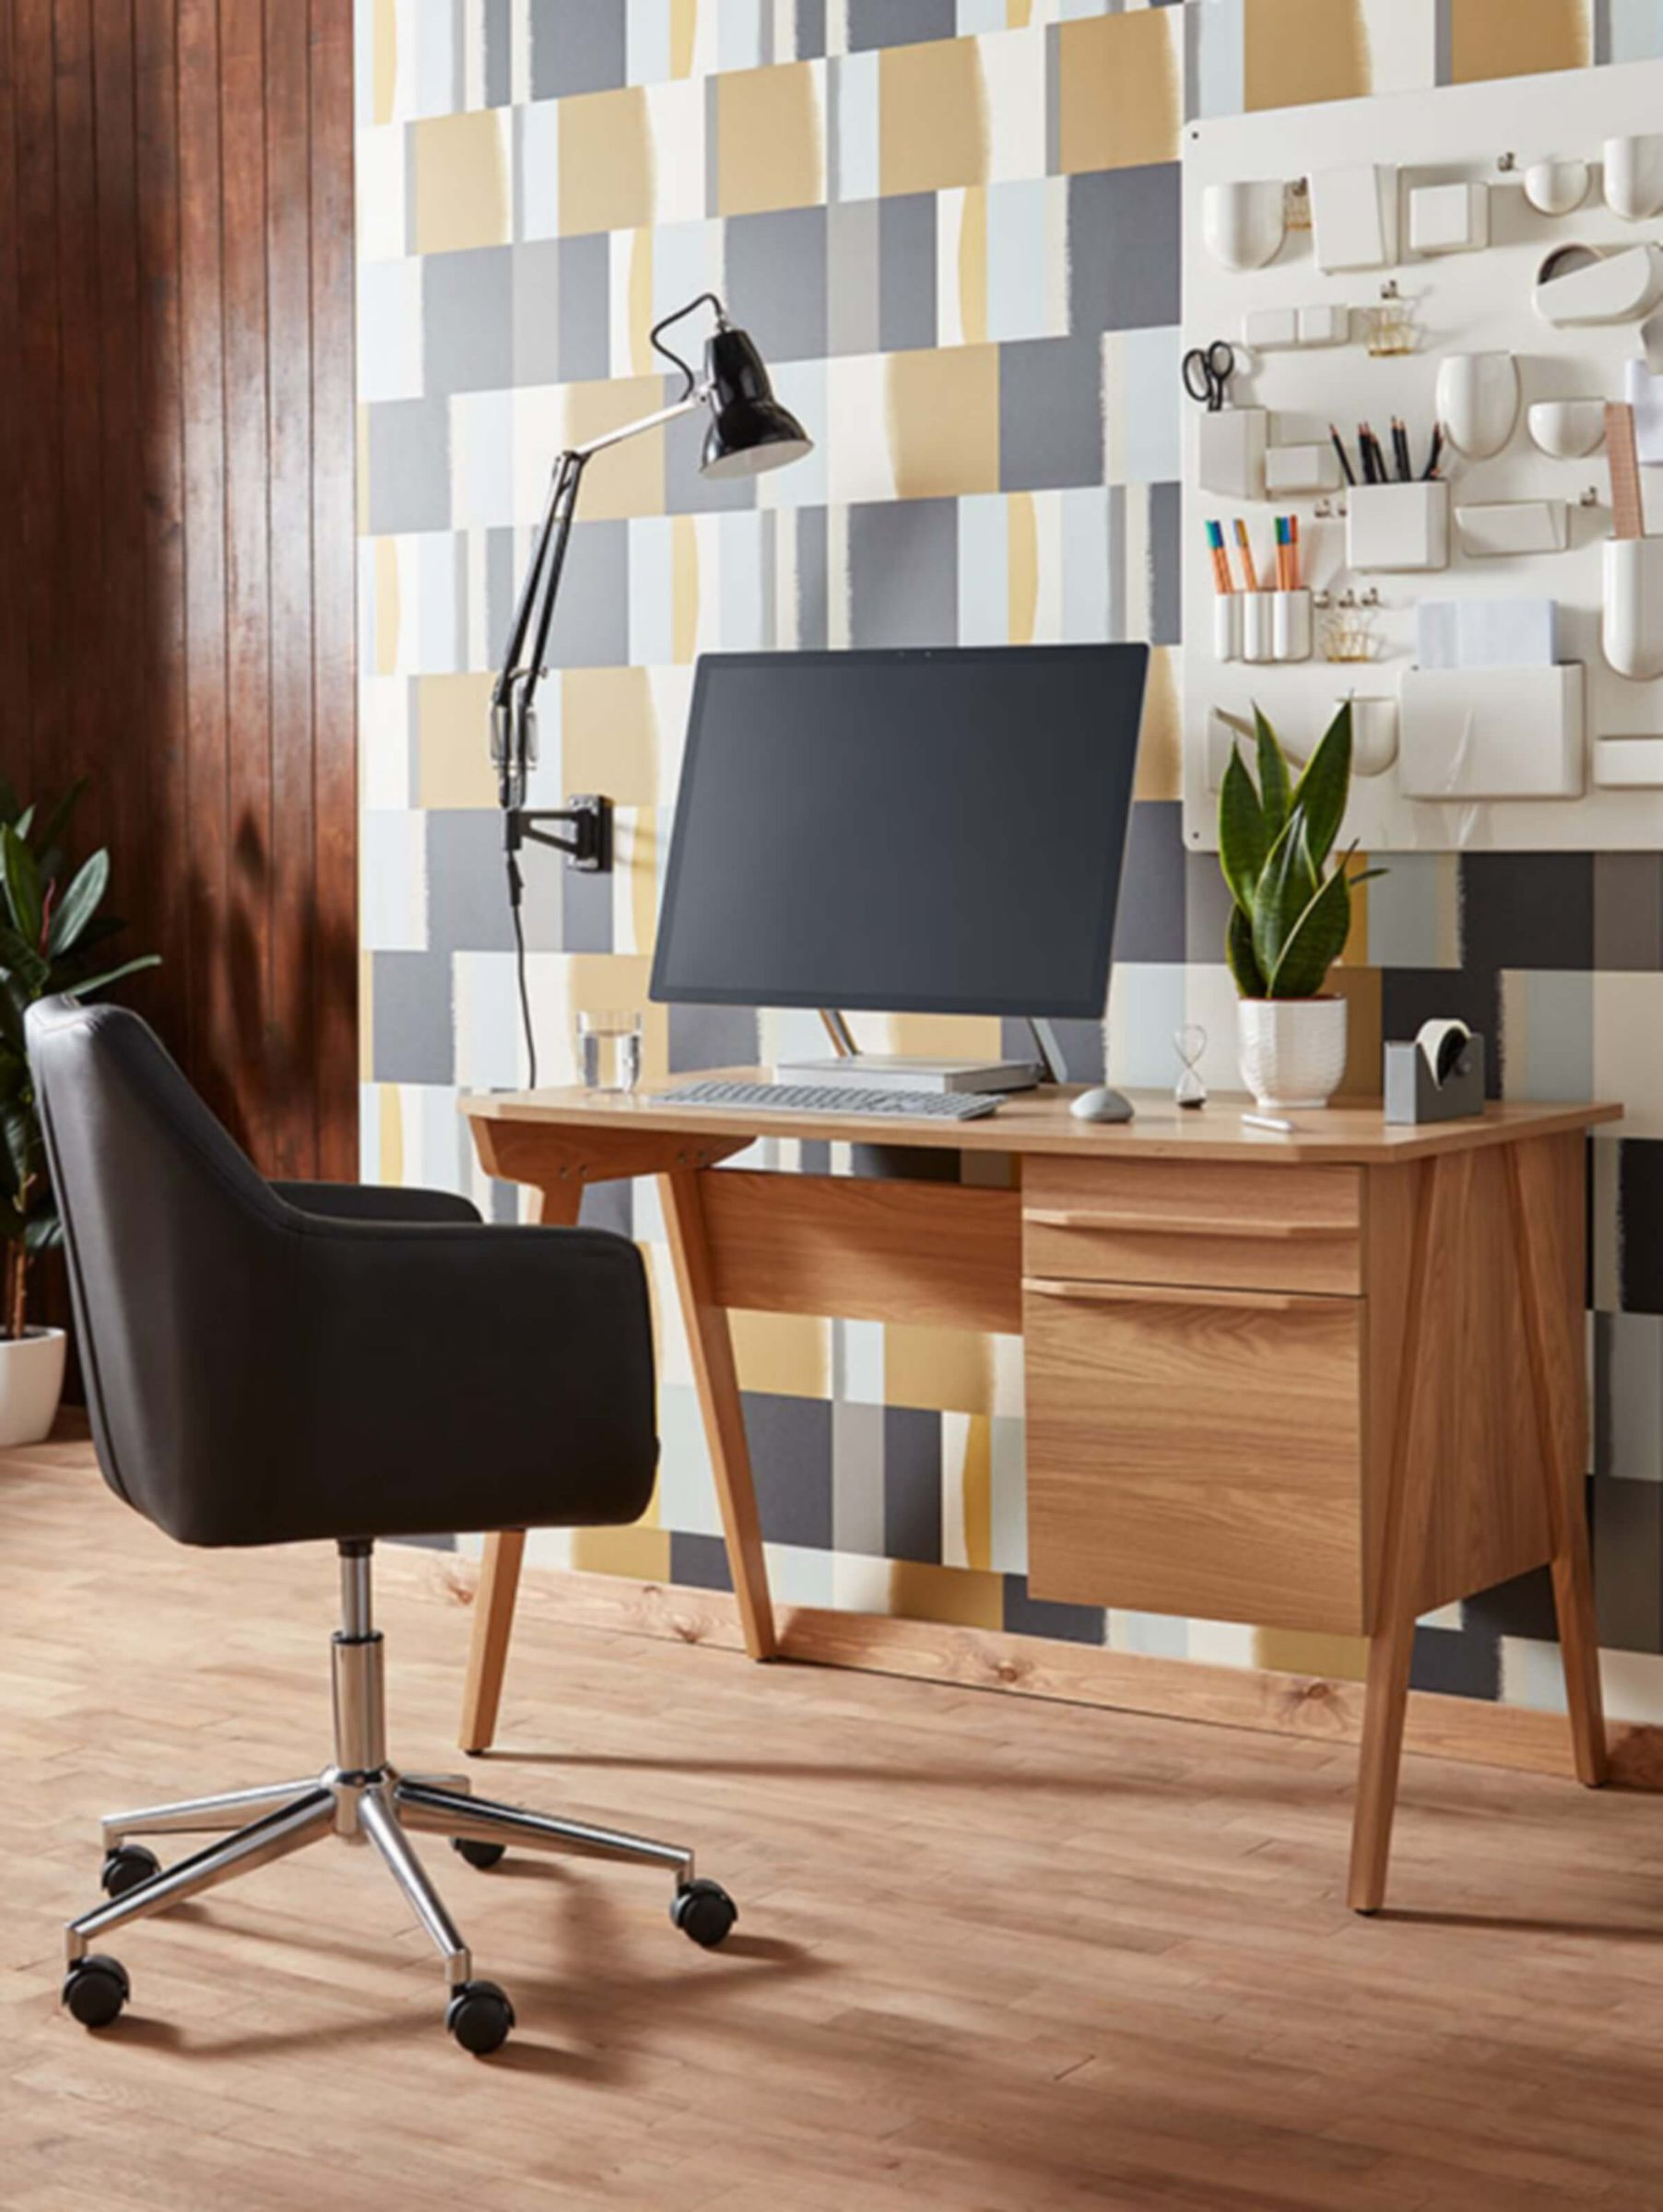 Home office furniture office chairs ZHCFHQL